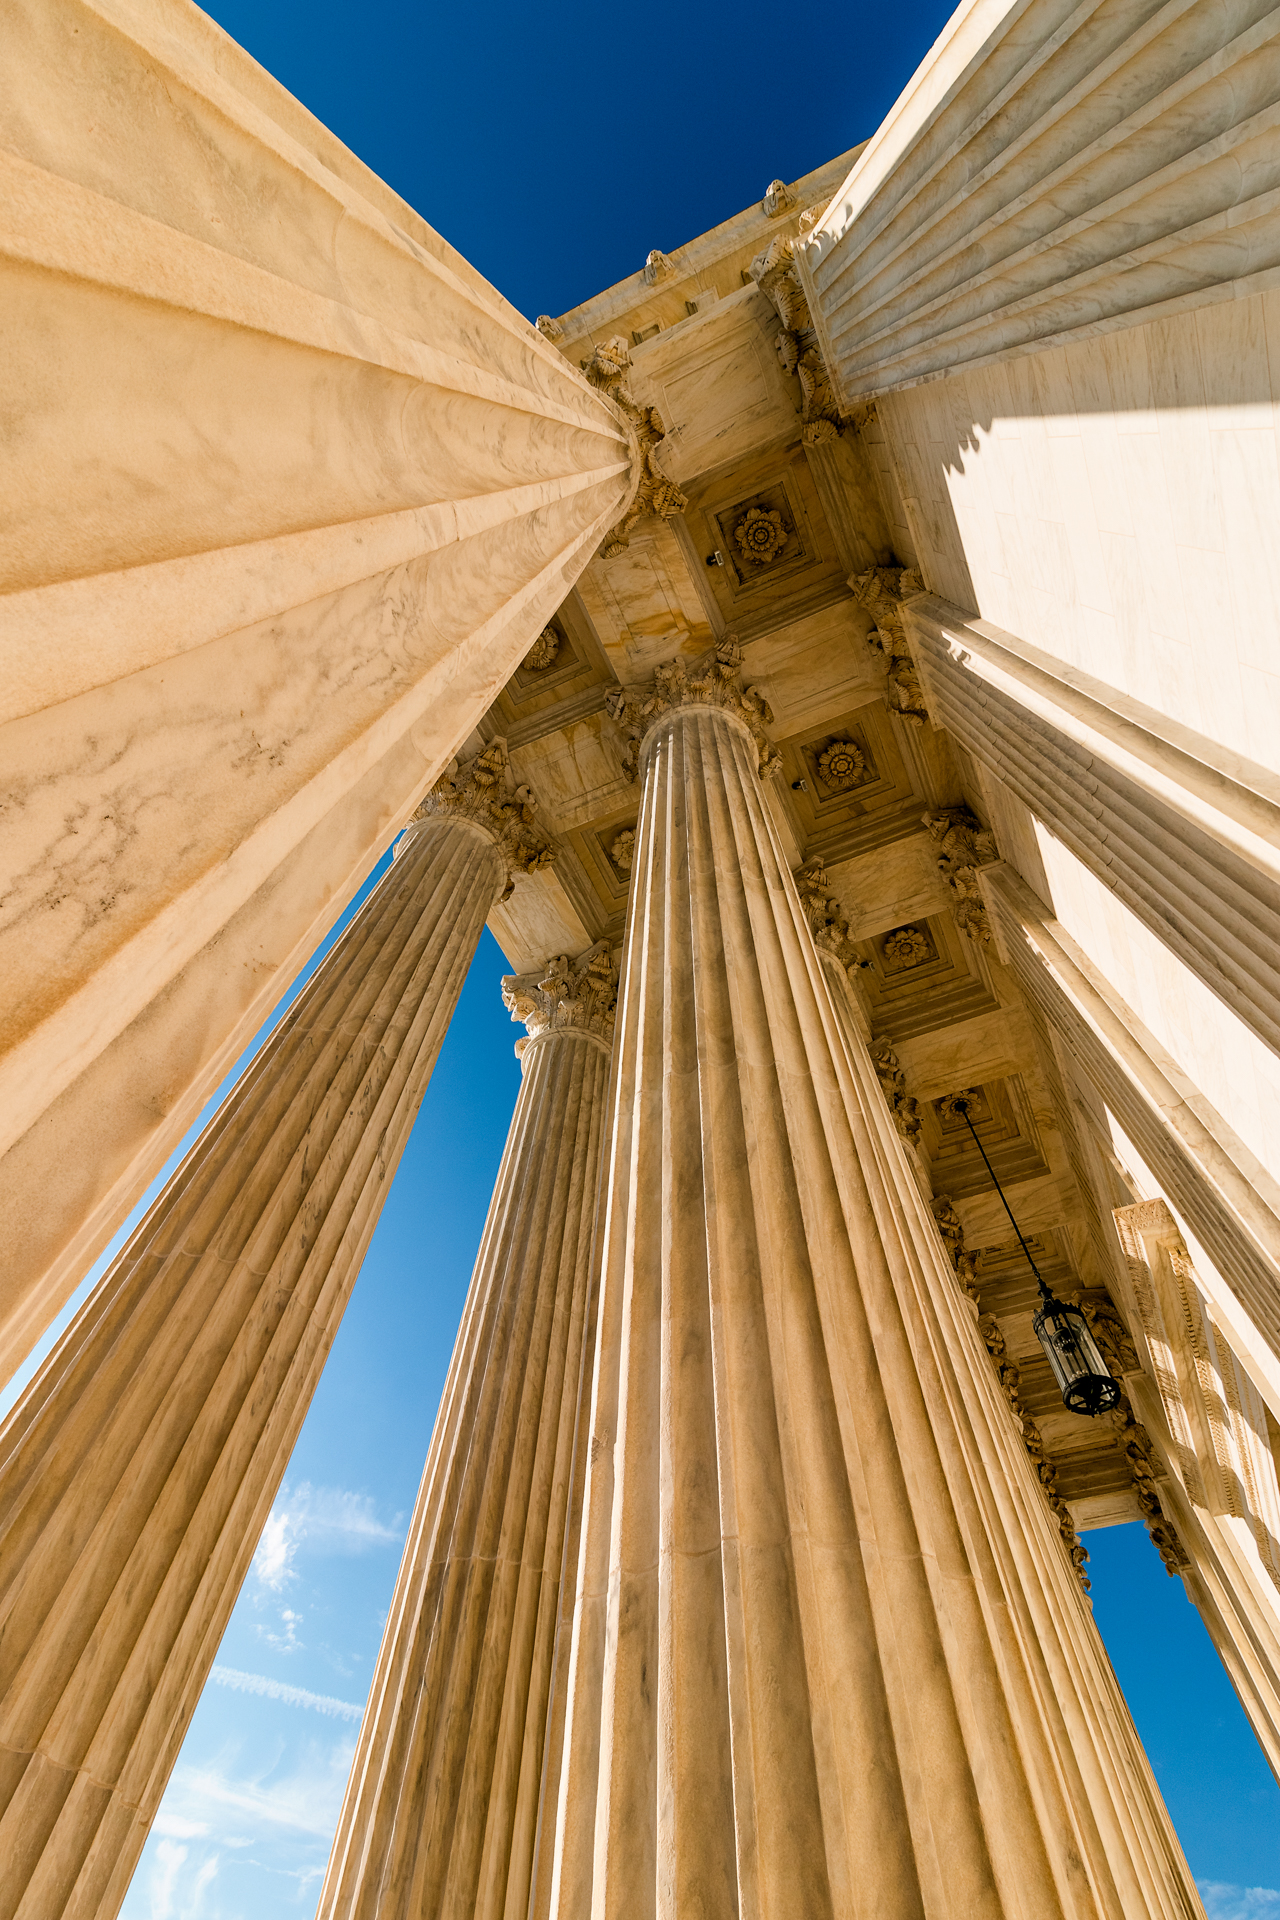 The Classics – Wide angle view of the columns at the Supreme Court{&nbsp;}(Image: Zack Lewkowicz)<p></p>